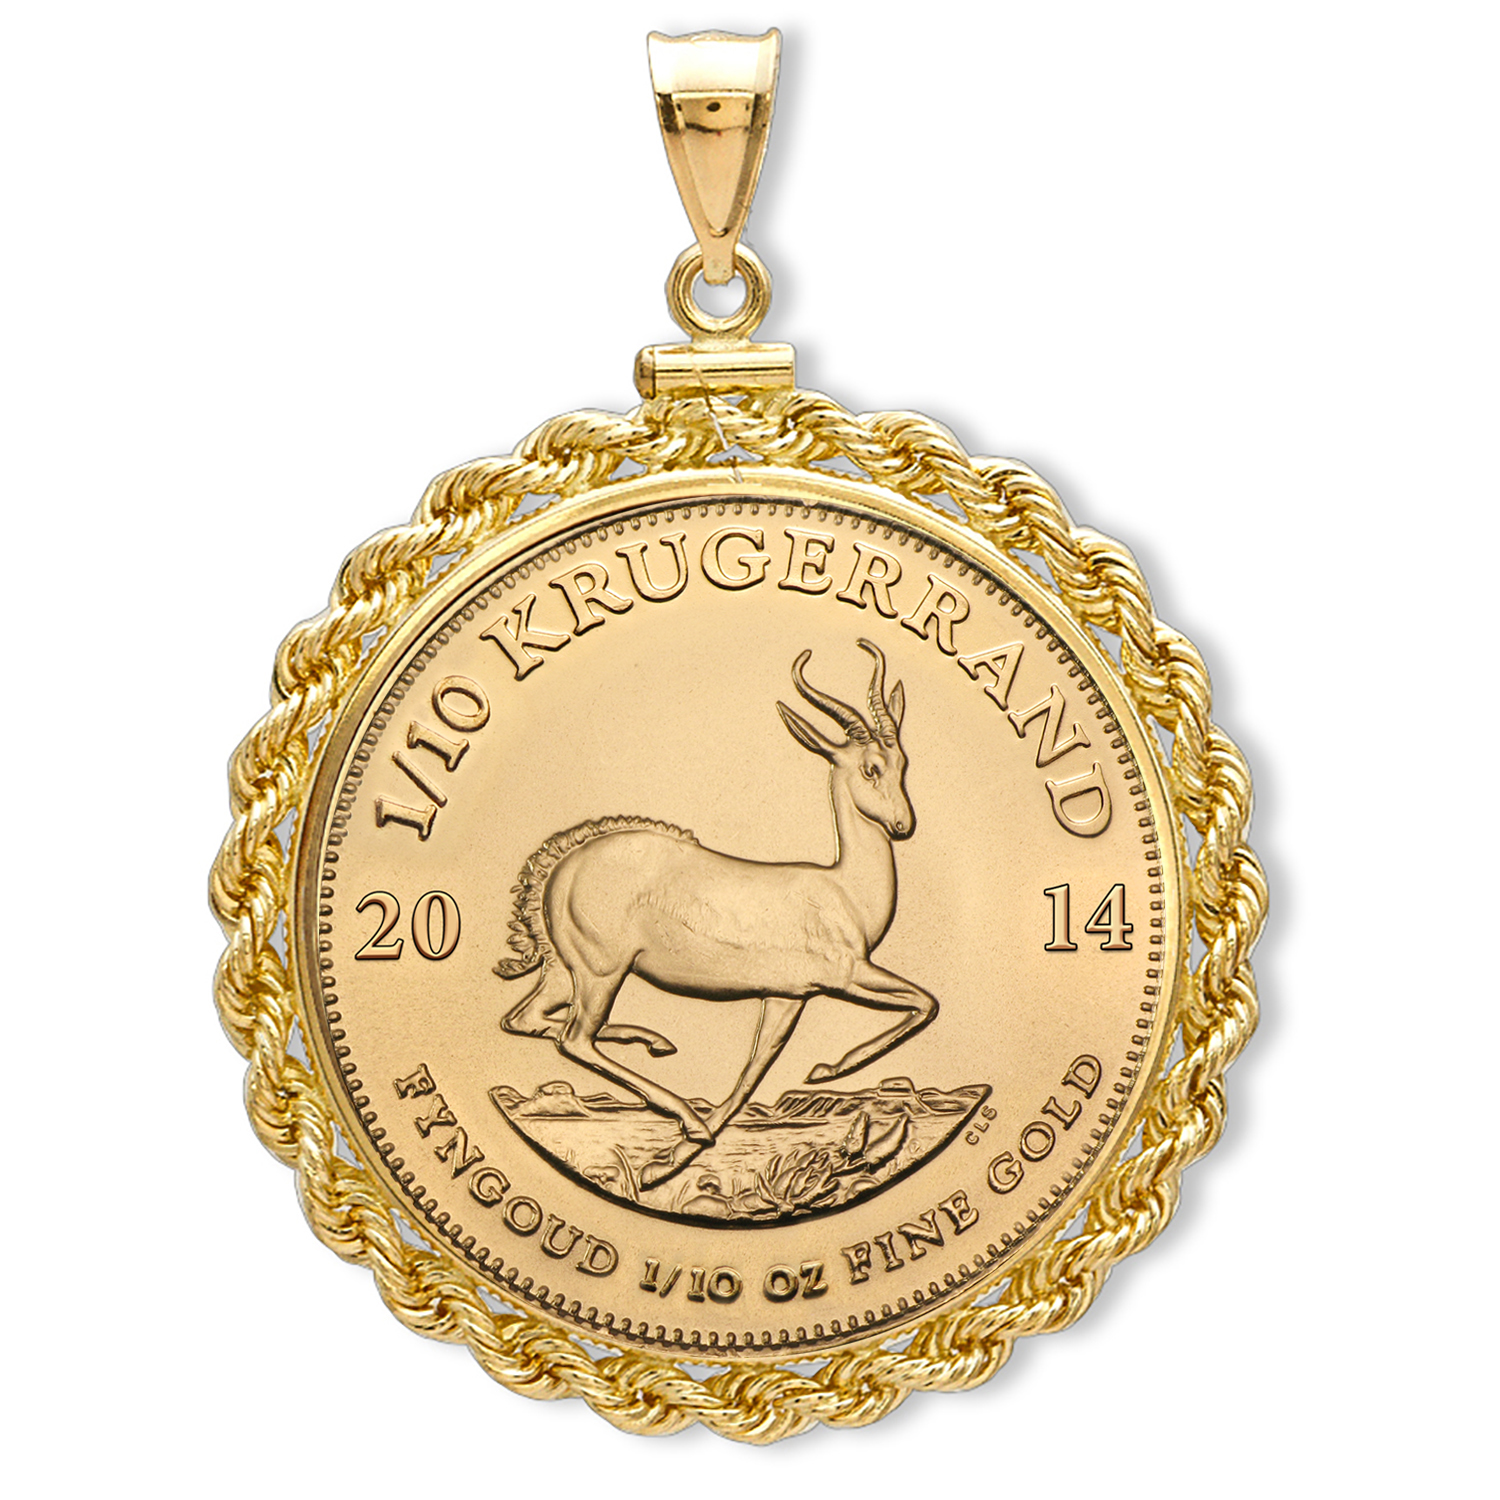 2014 1/10 oz Gold Krugerrand Pendant (Rope-ScrewTop Bezel)